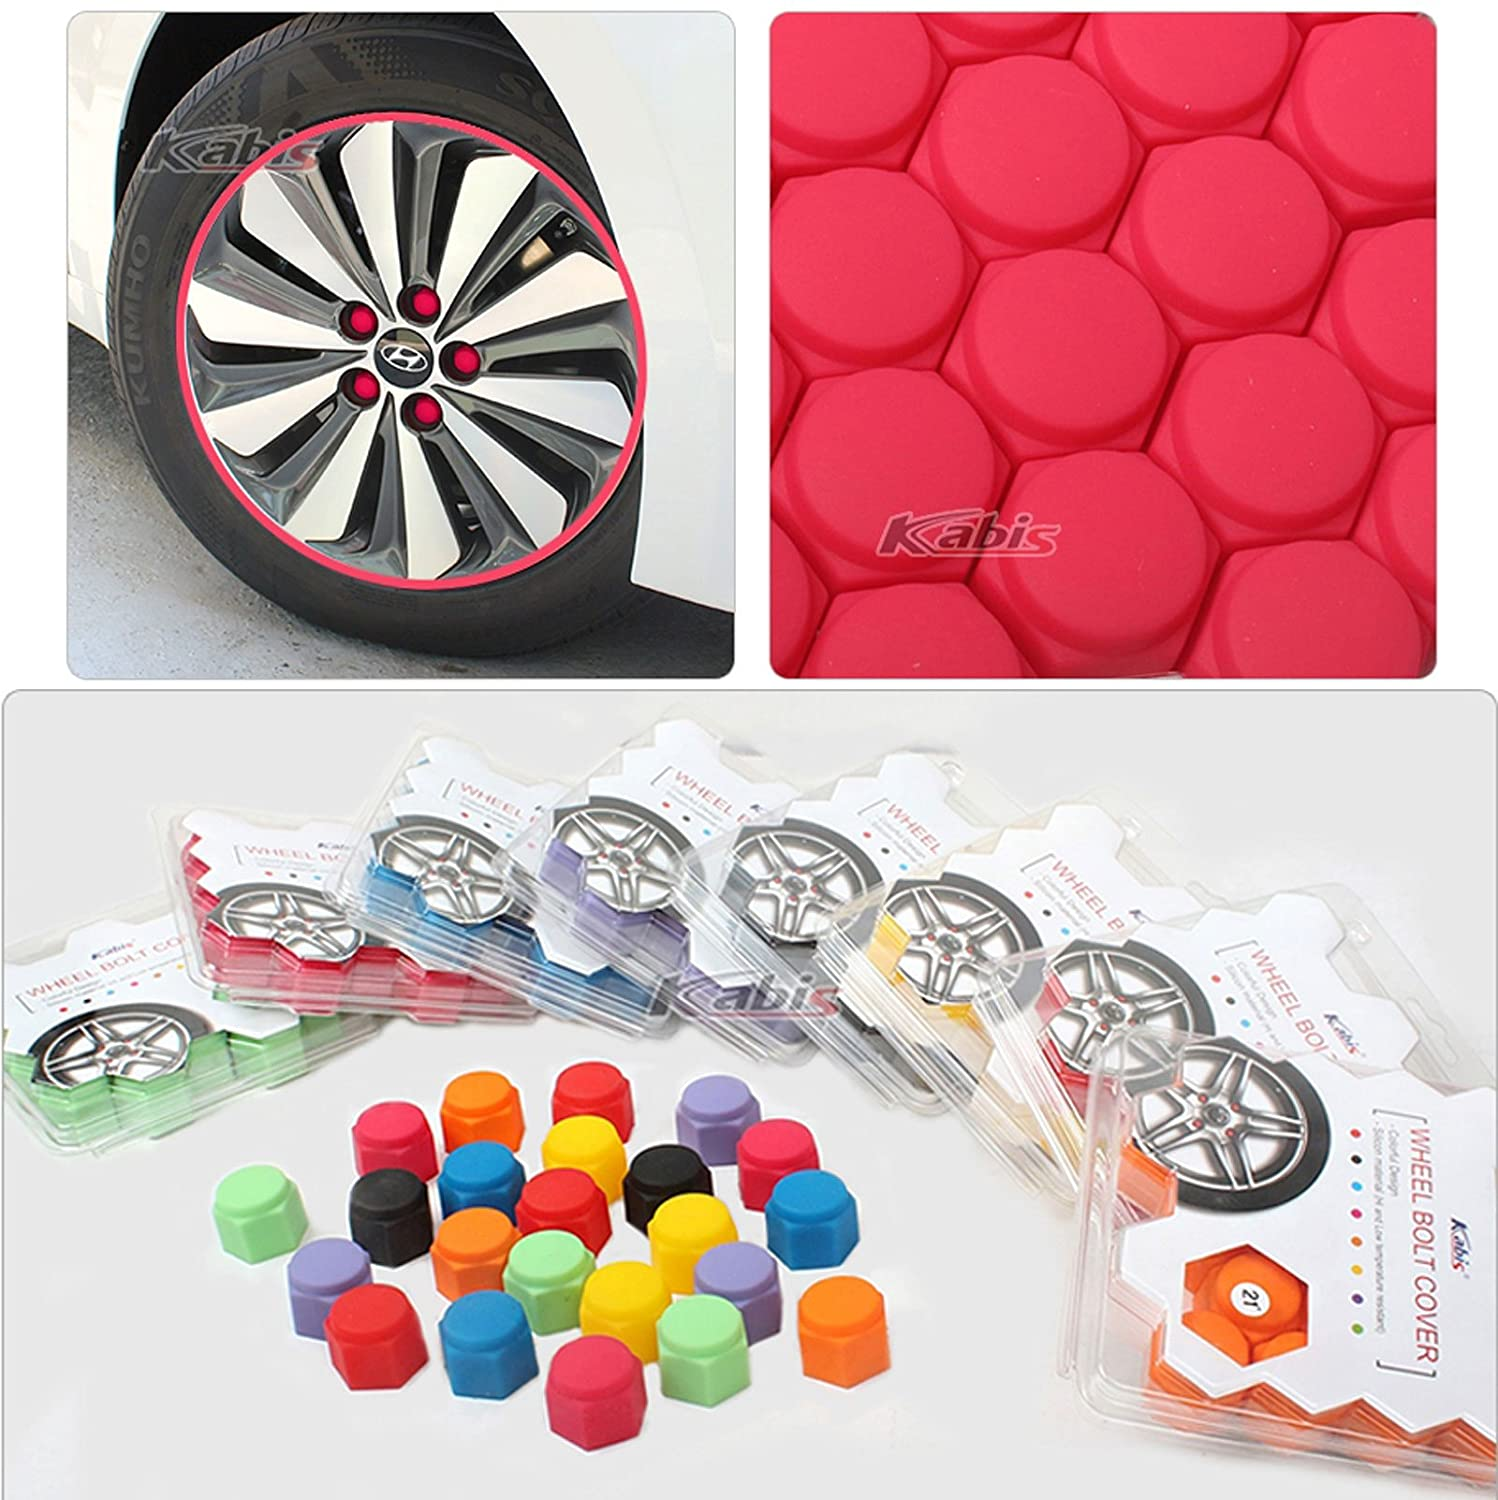 Set x20 Silicon Car Tuning Vehicle Wheel Nut Cover Bolt Cap Cover Set 8Color 19mm, Red